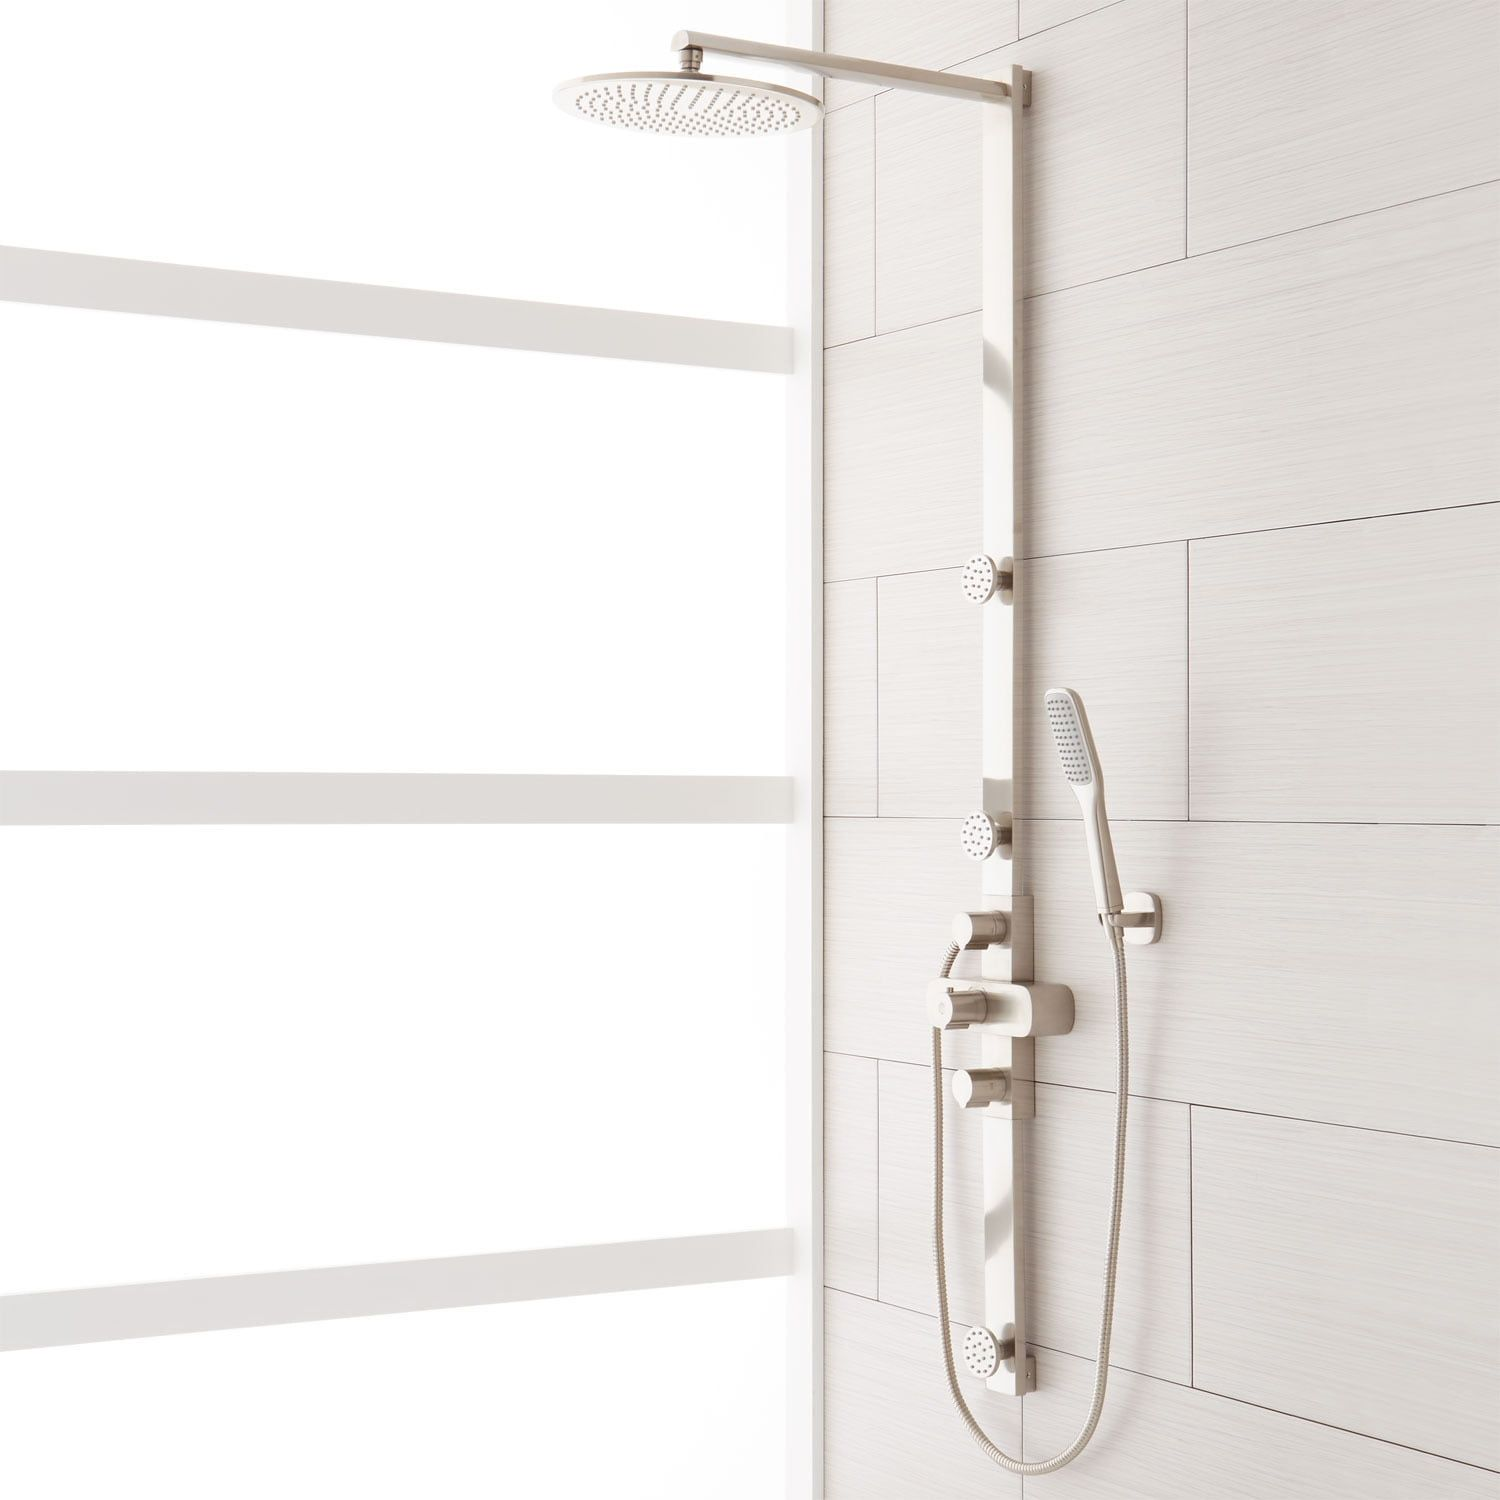 Correia Thermostatic Shower Panel With Rainfall Shower Head Hand